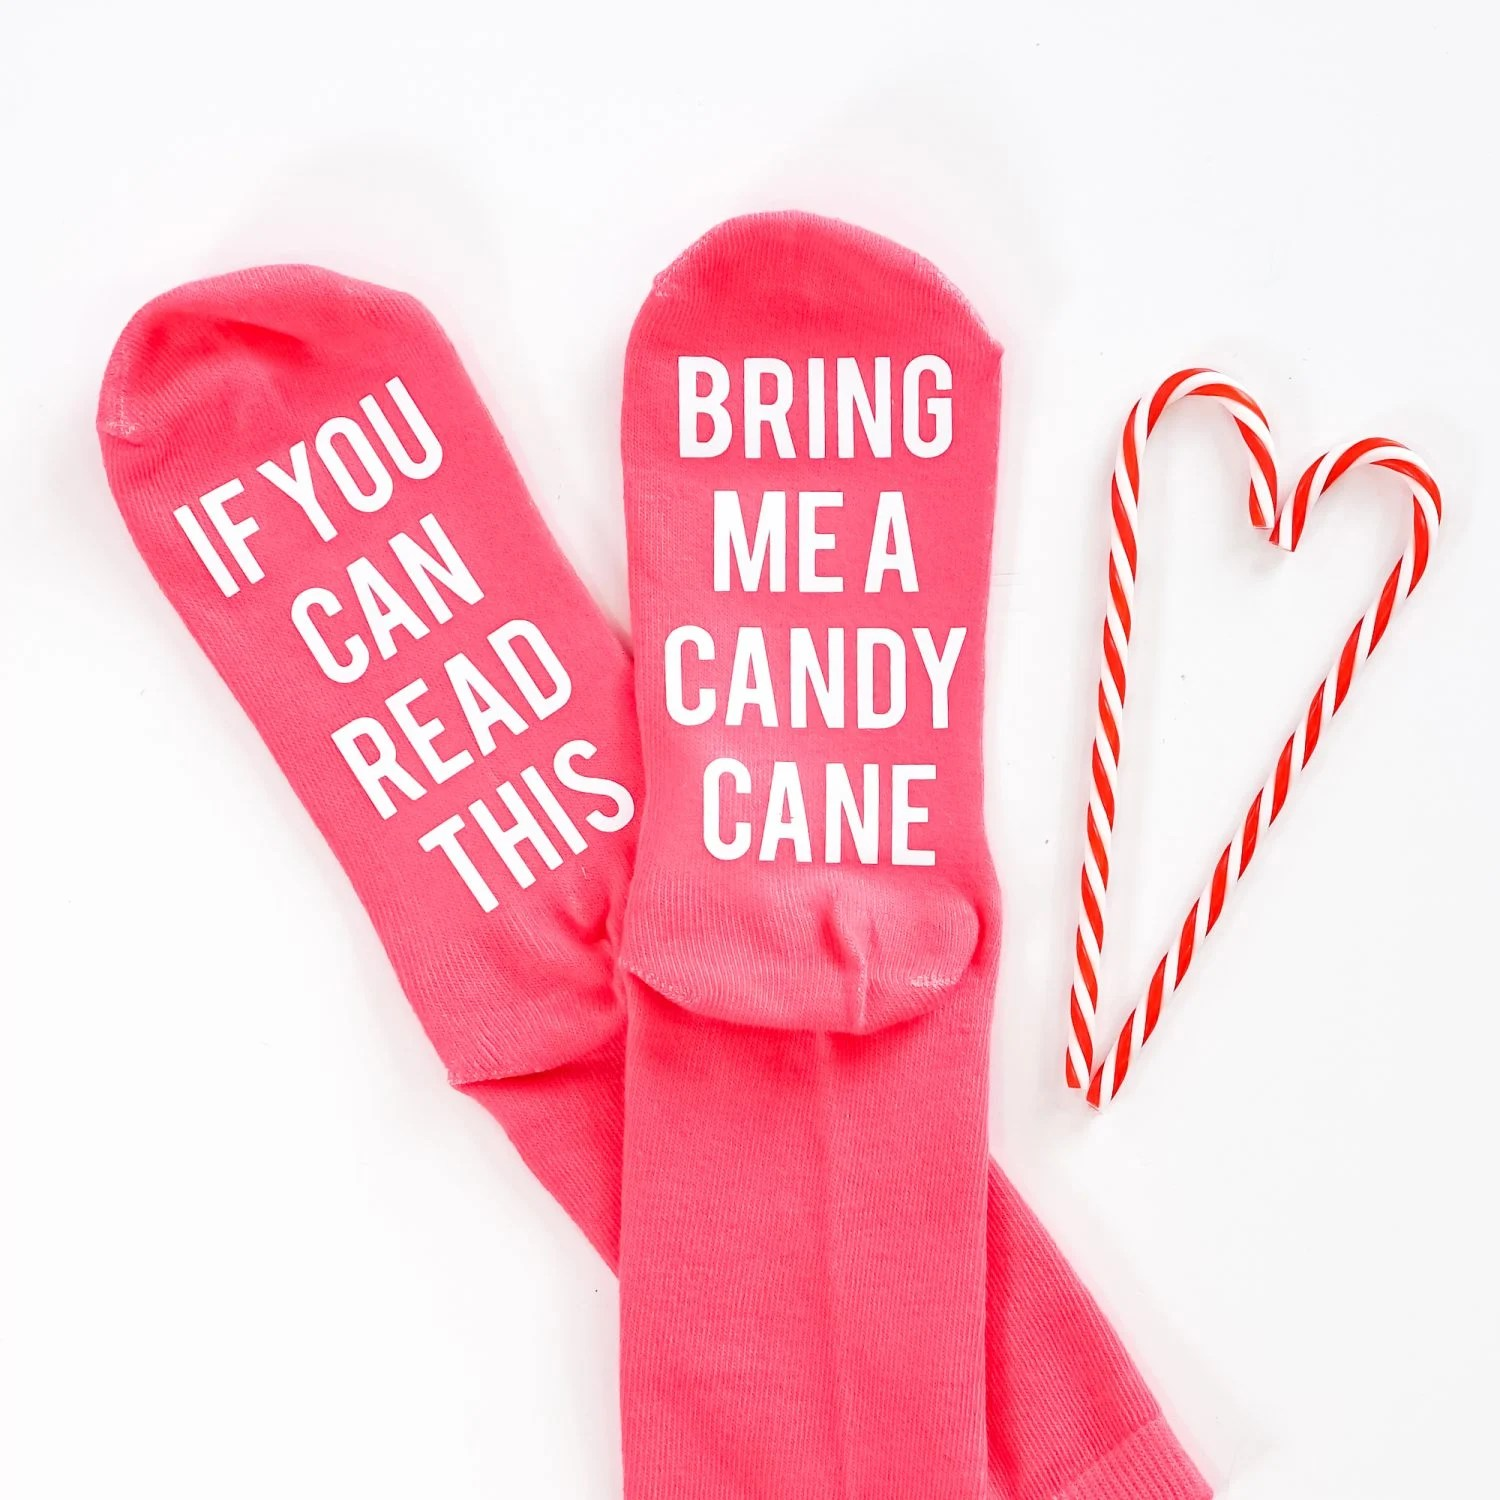 Funny Christmas Socks with candy canes on a white background.